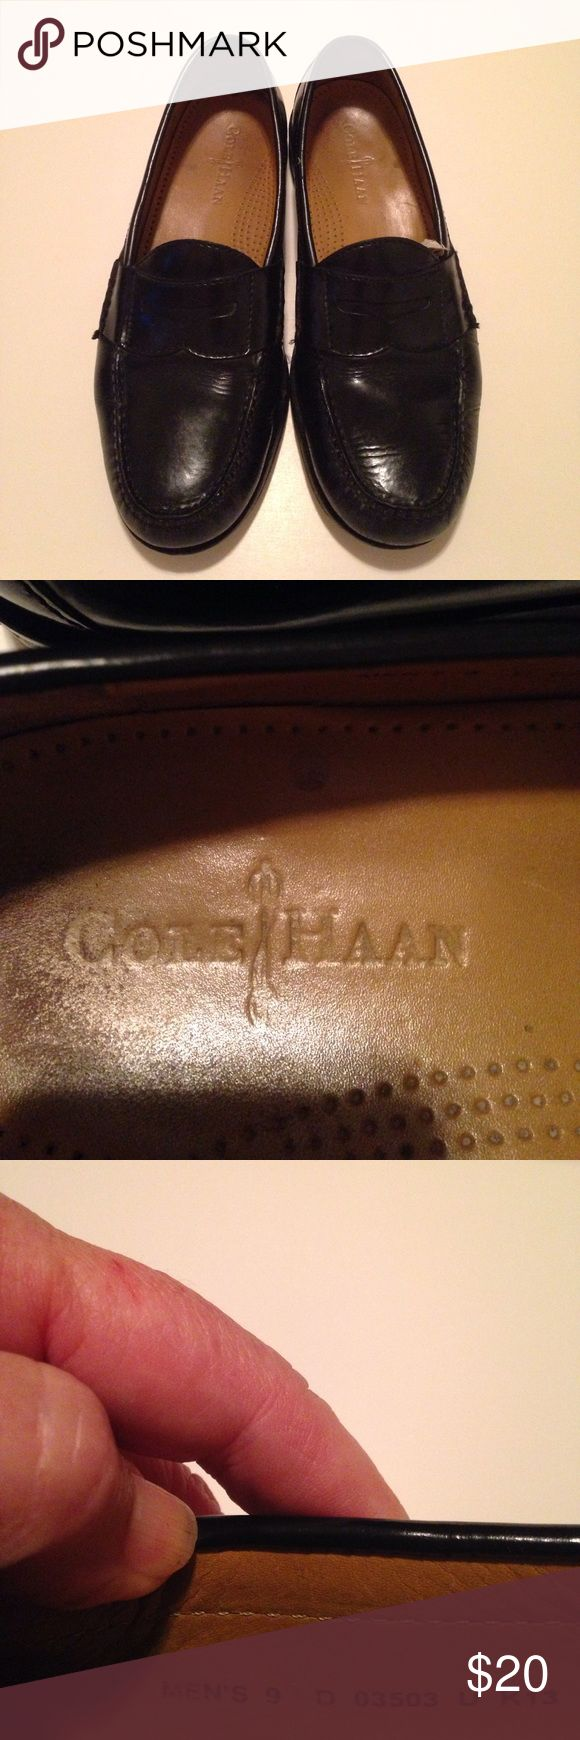 "Cole Haan Men's 9D Loafers GUC...wear spots appear to have been filled with ""Shoe goo"" leveling sole...lots of wear left until new sole needed...D width See image. Cole Haan Shoes Loafers & Slip-Ons"